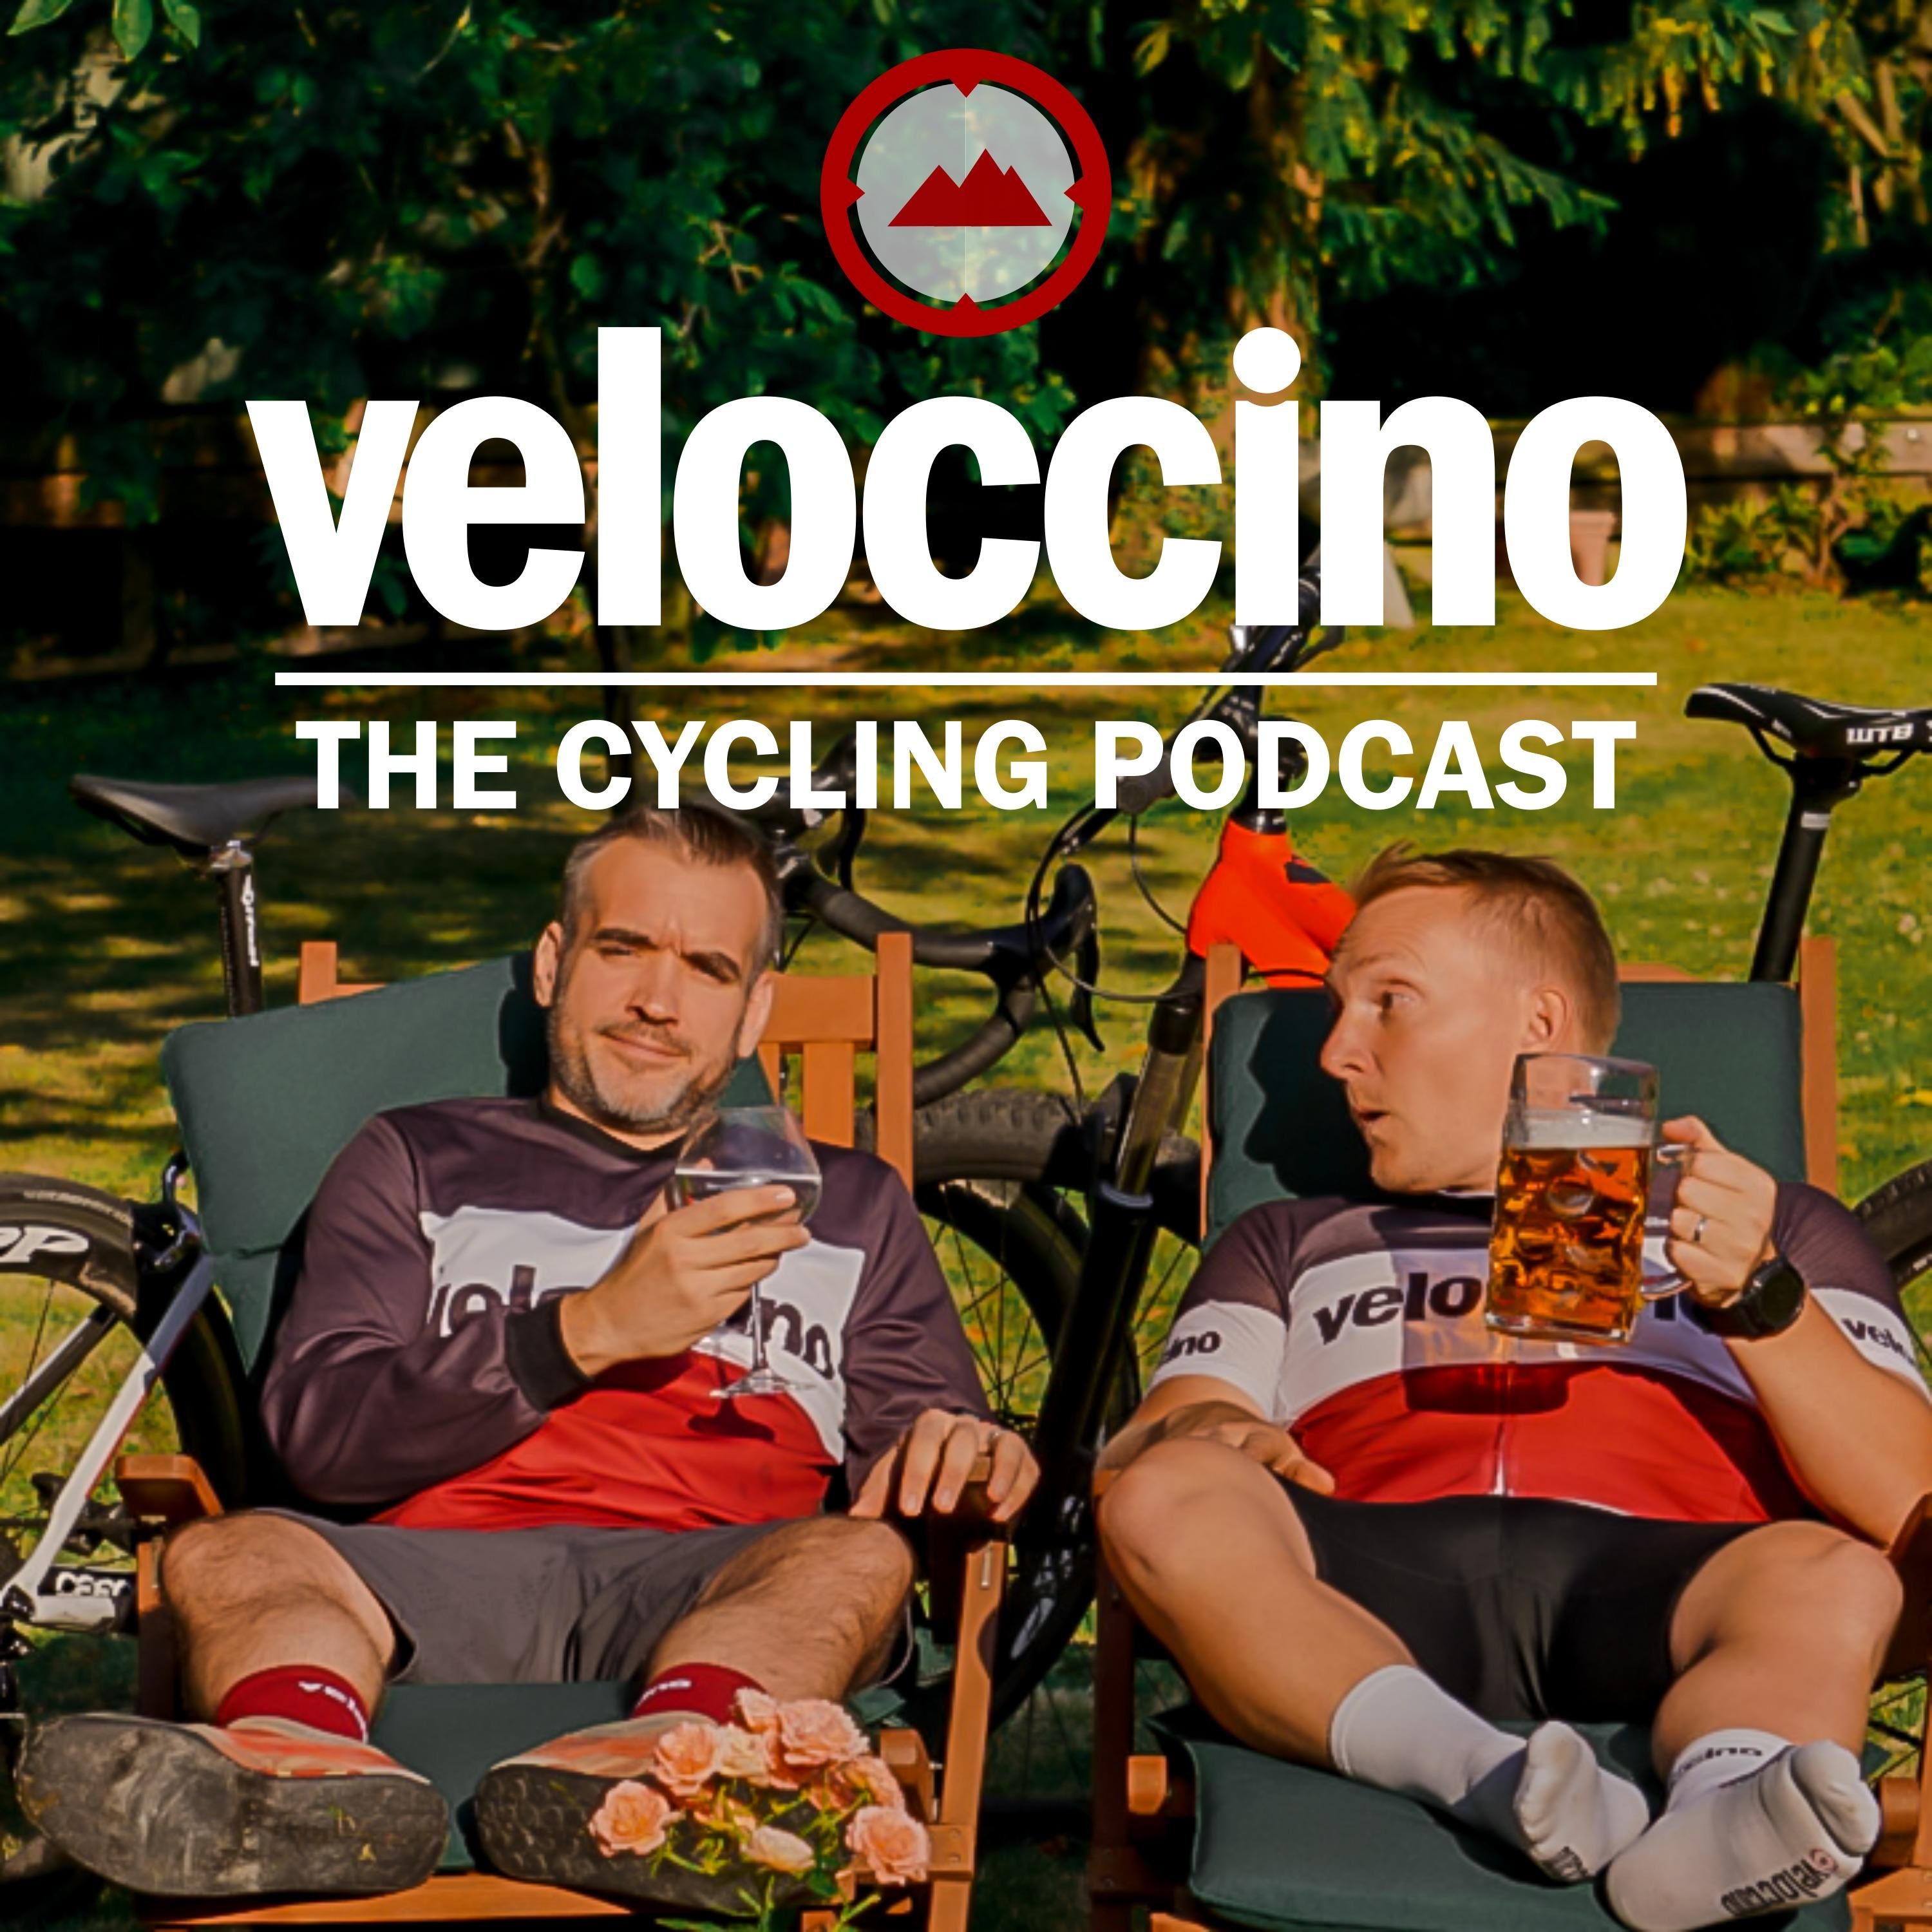 veloccino - The best stories have not yet been ridden! - The Cycling Podcast